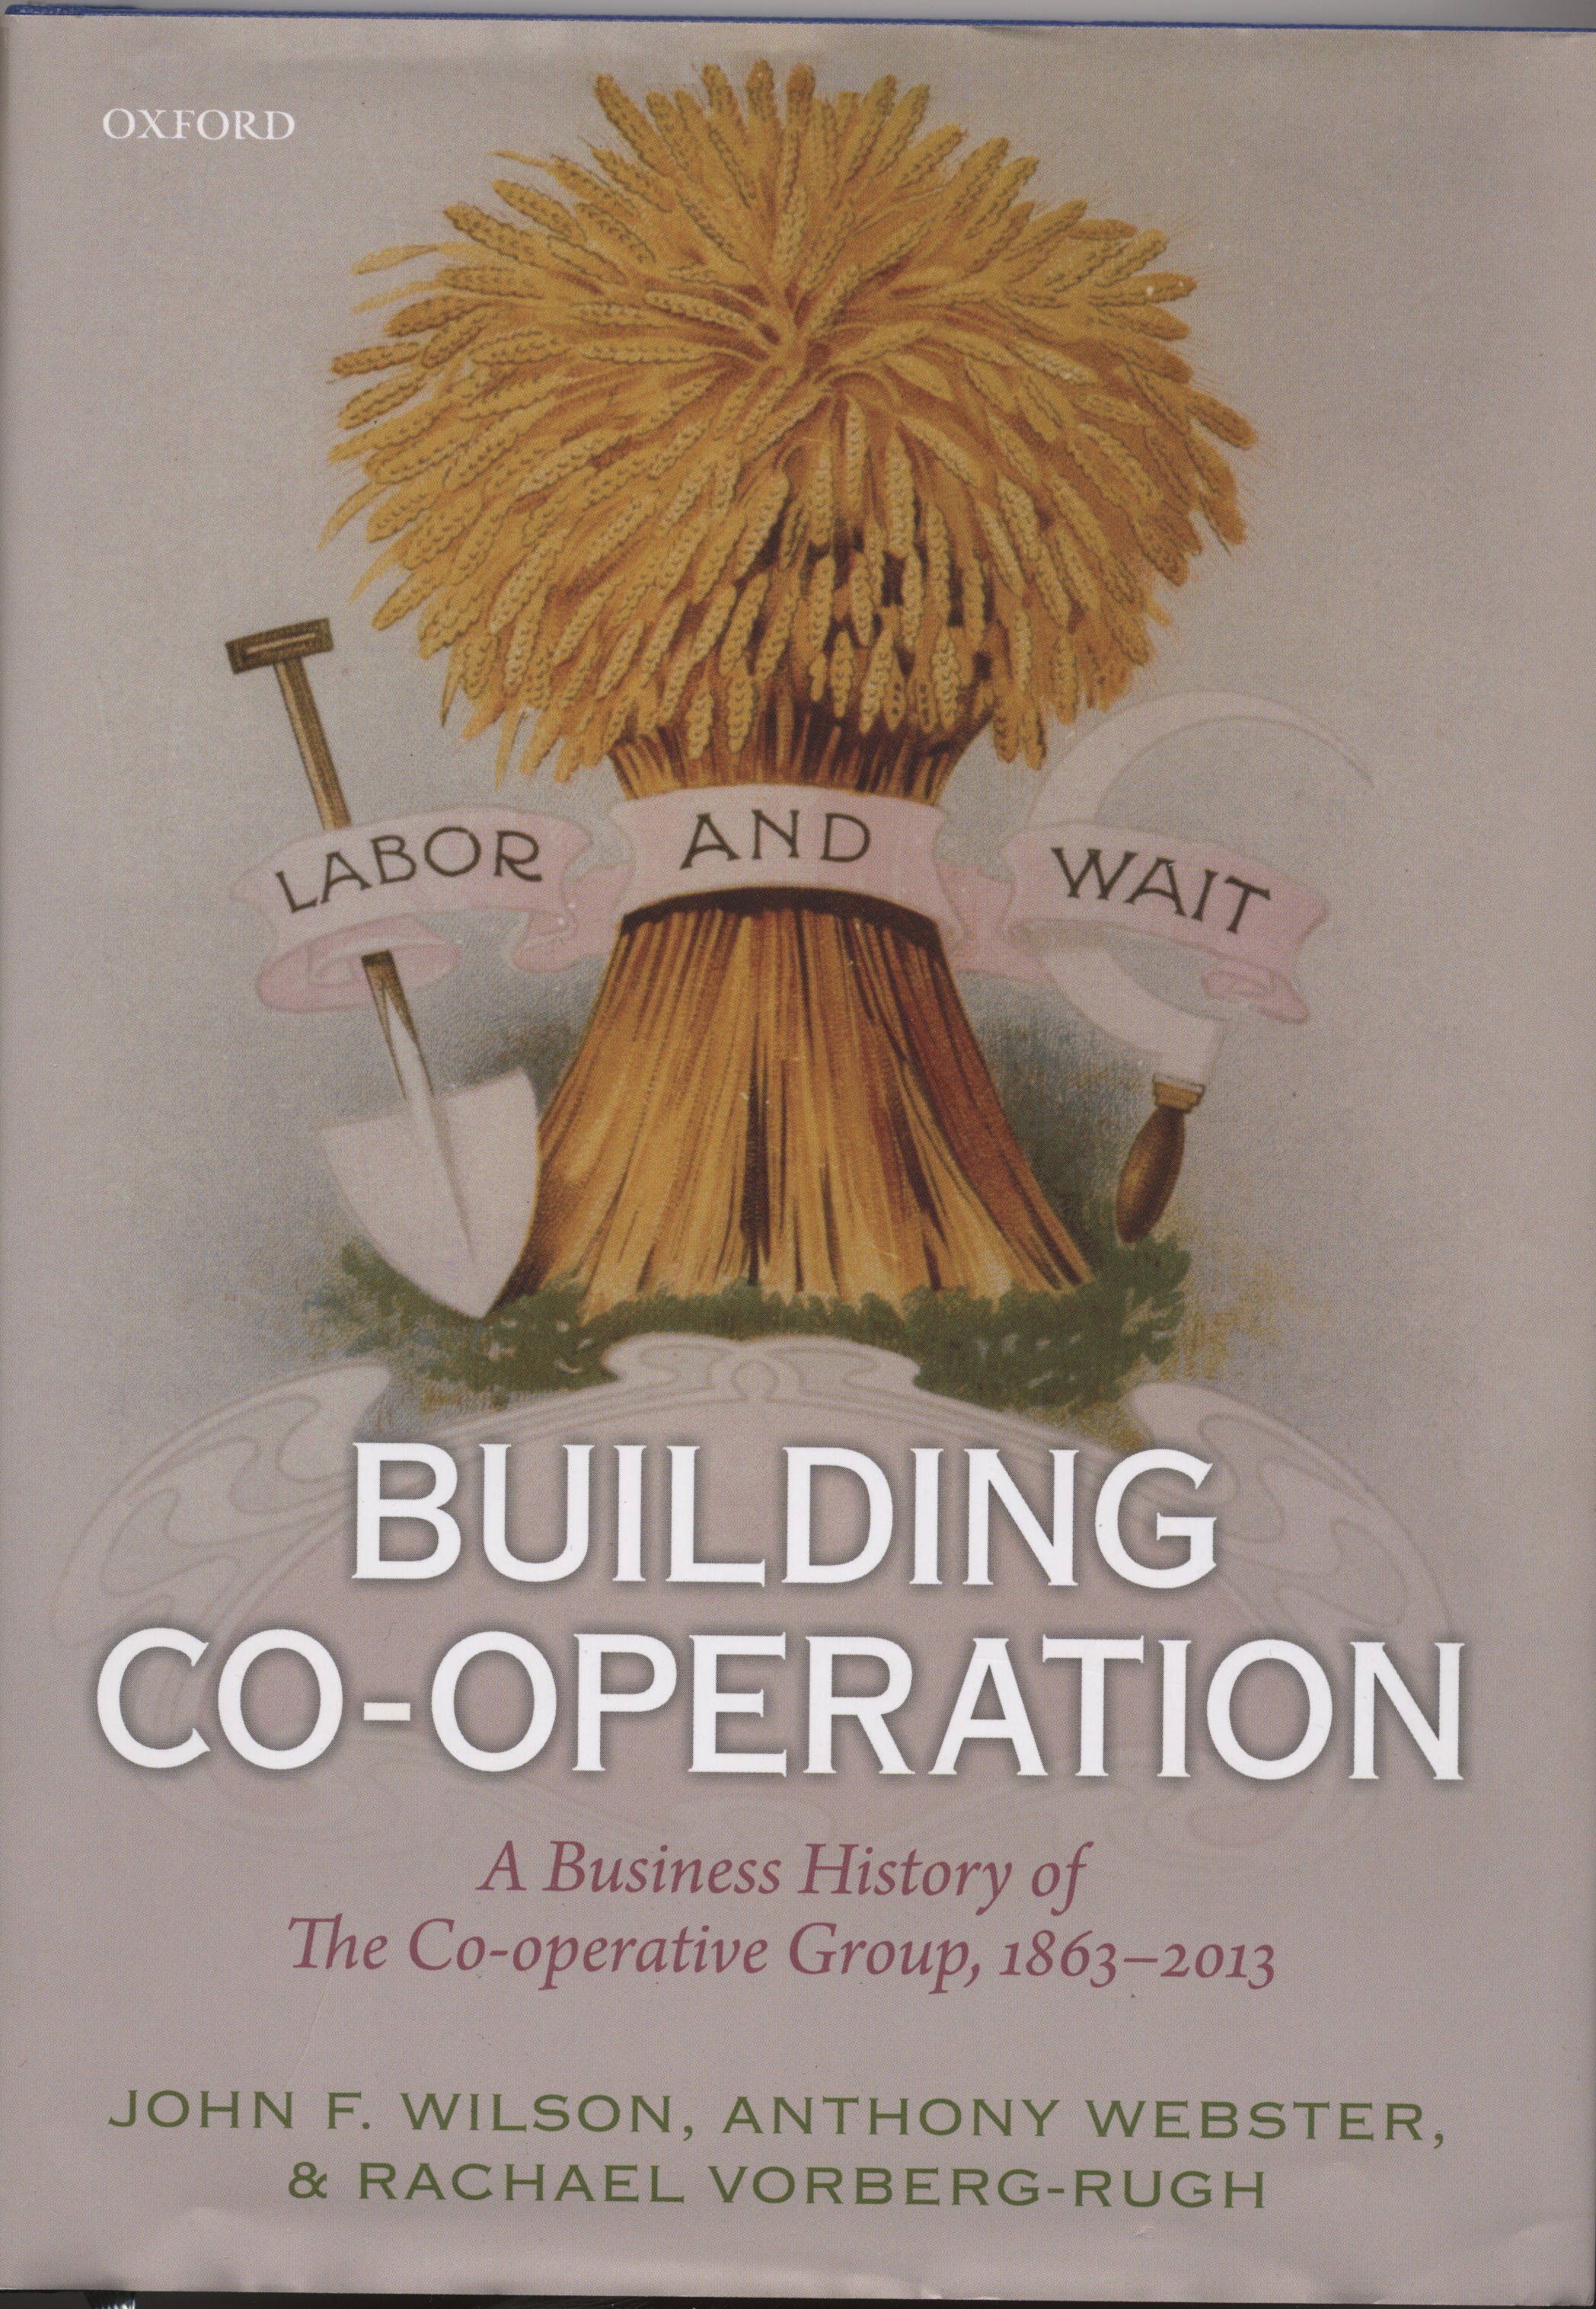 Business Book Cover History : Building co operation a business history of the